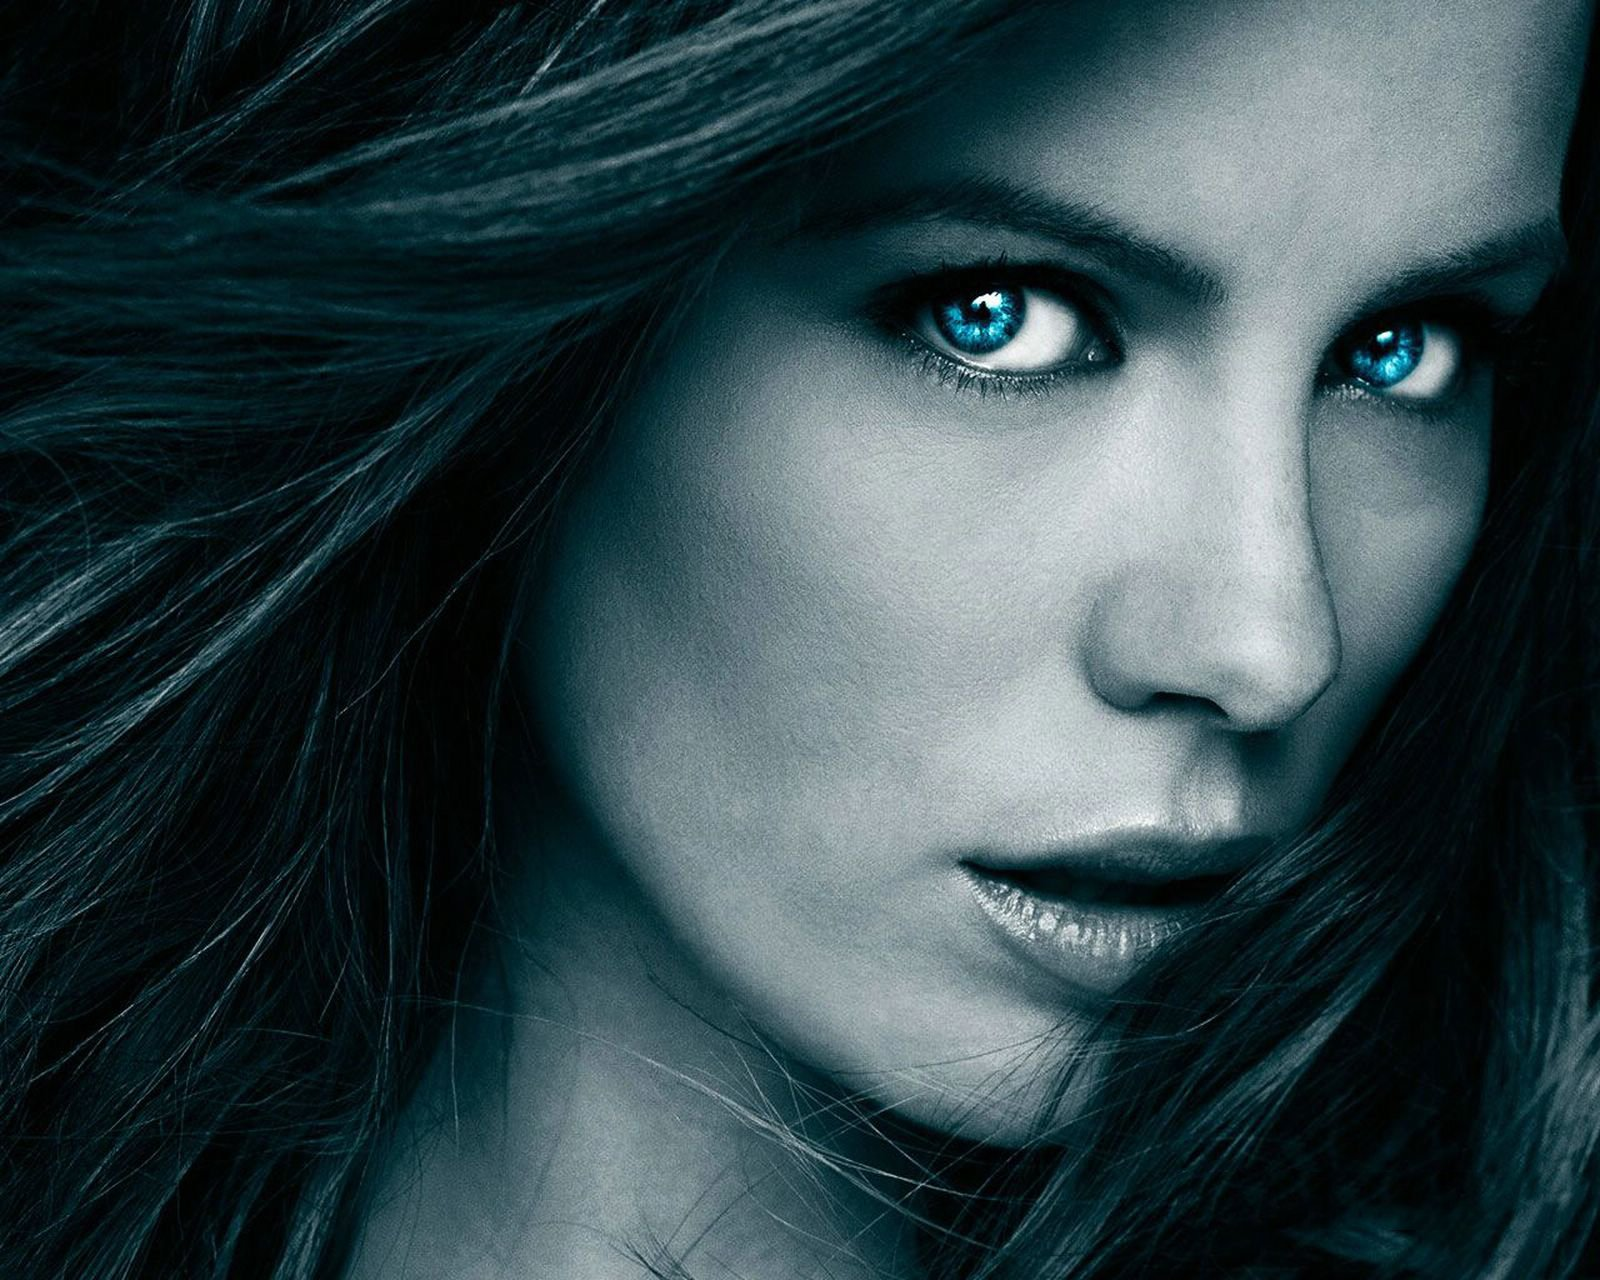 Berühmtheiten - Kate Beckinsale  Wallpaper